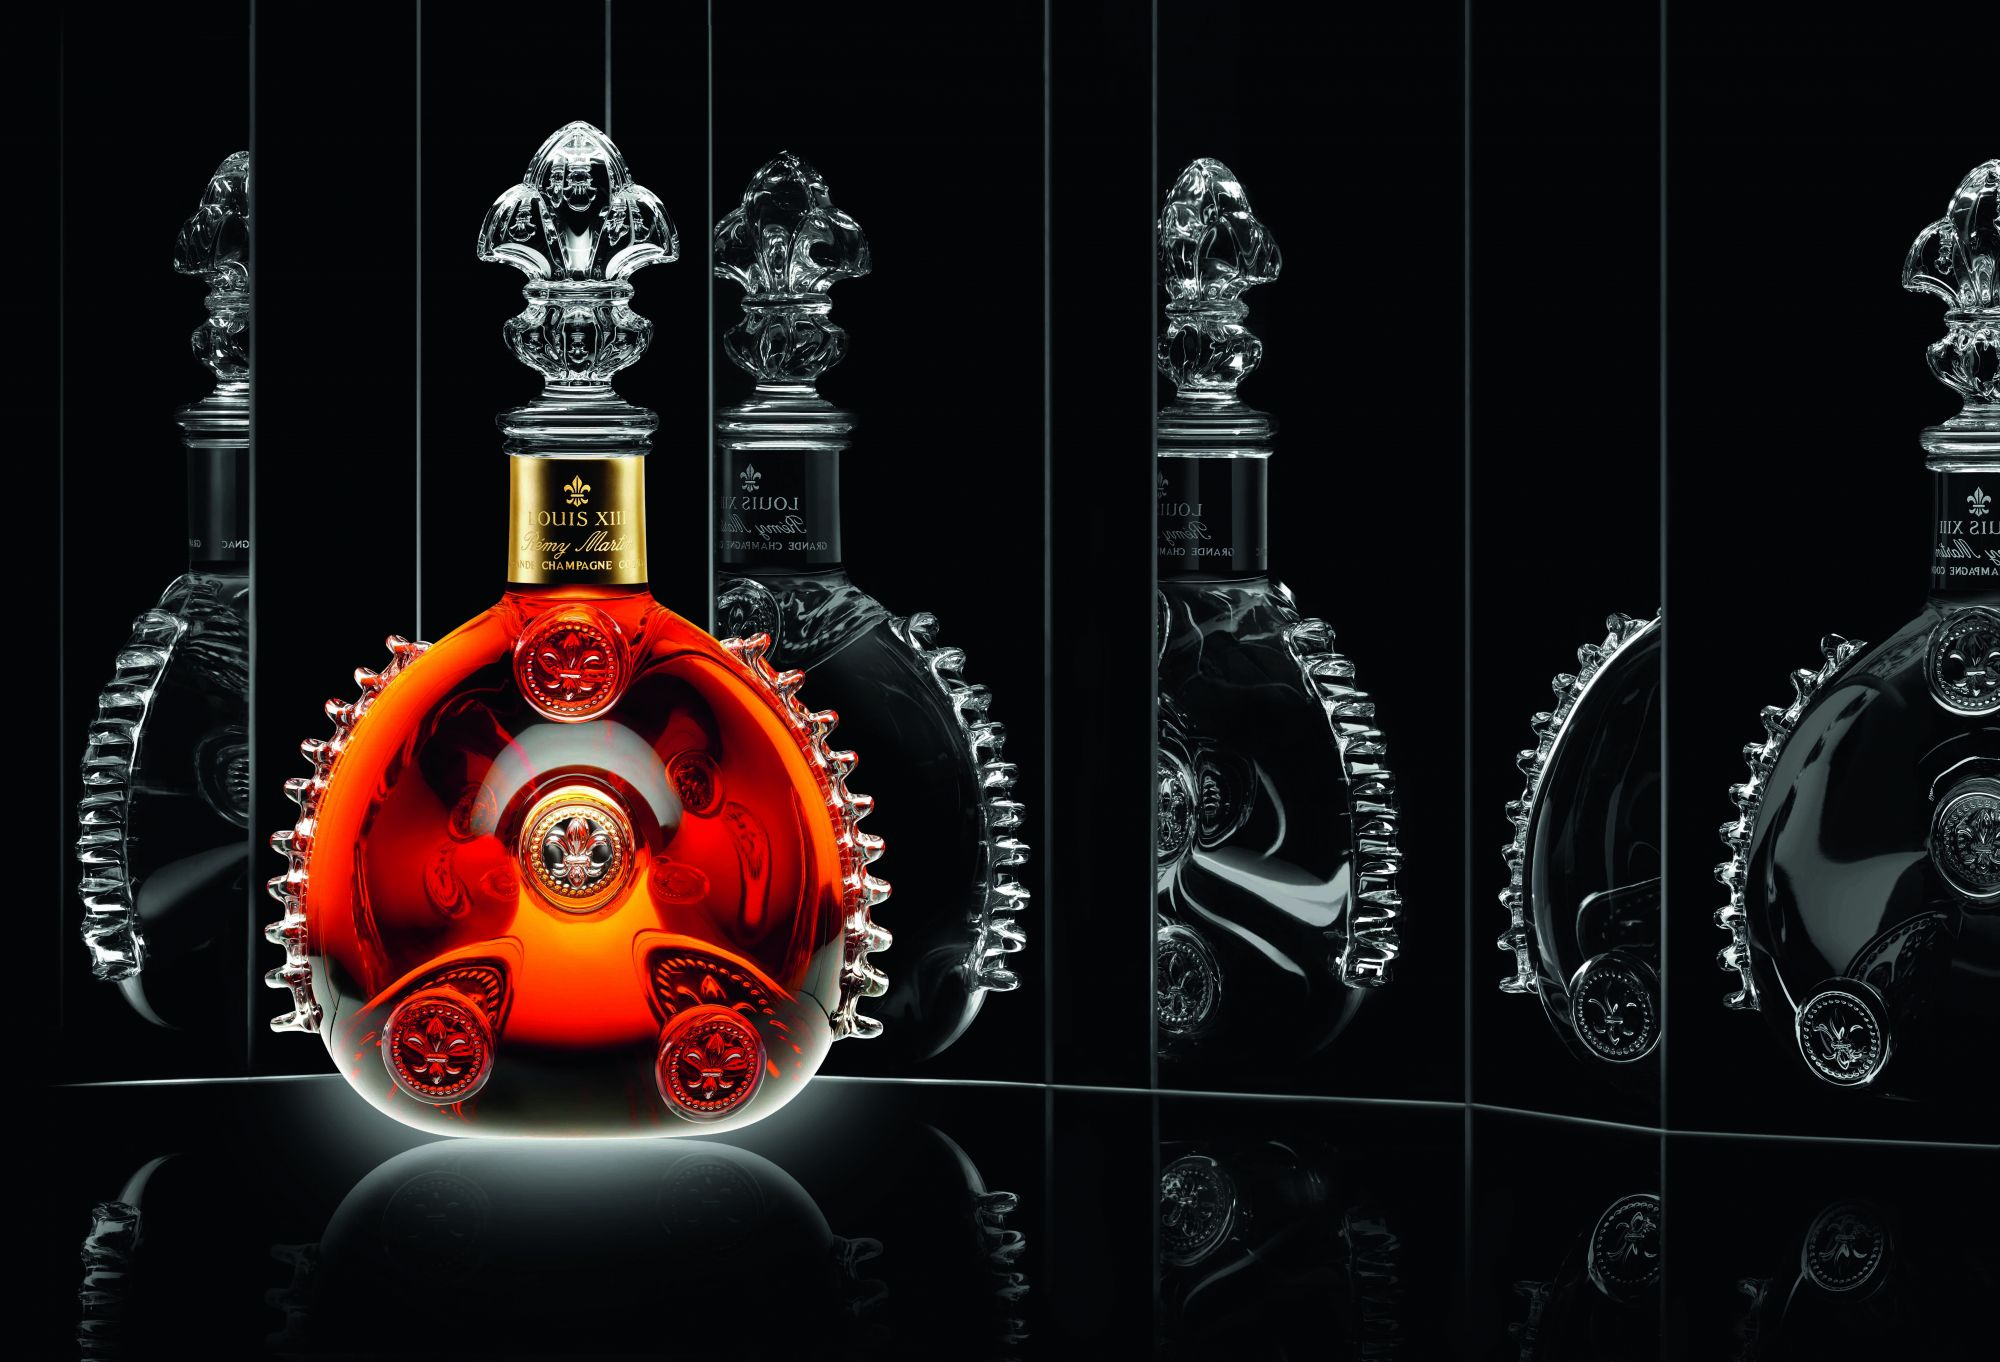 Remy Martin's Louis XIII: A Most Exquisite Spirit